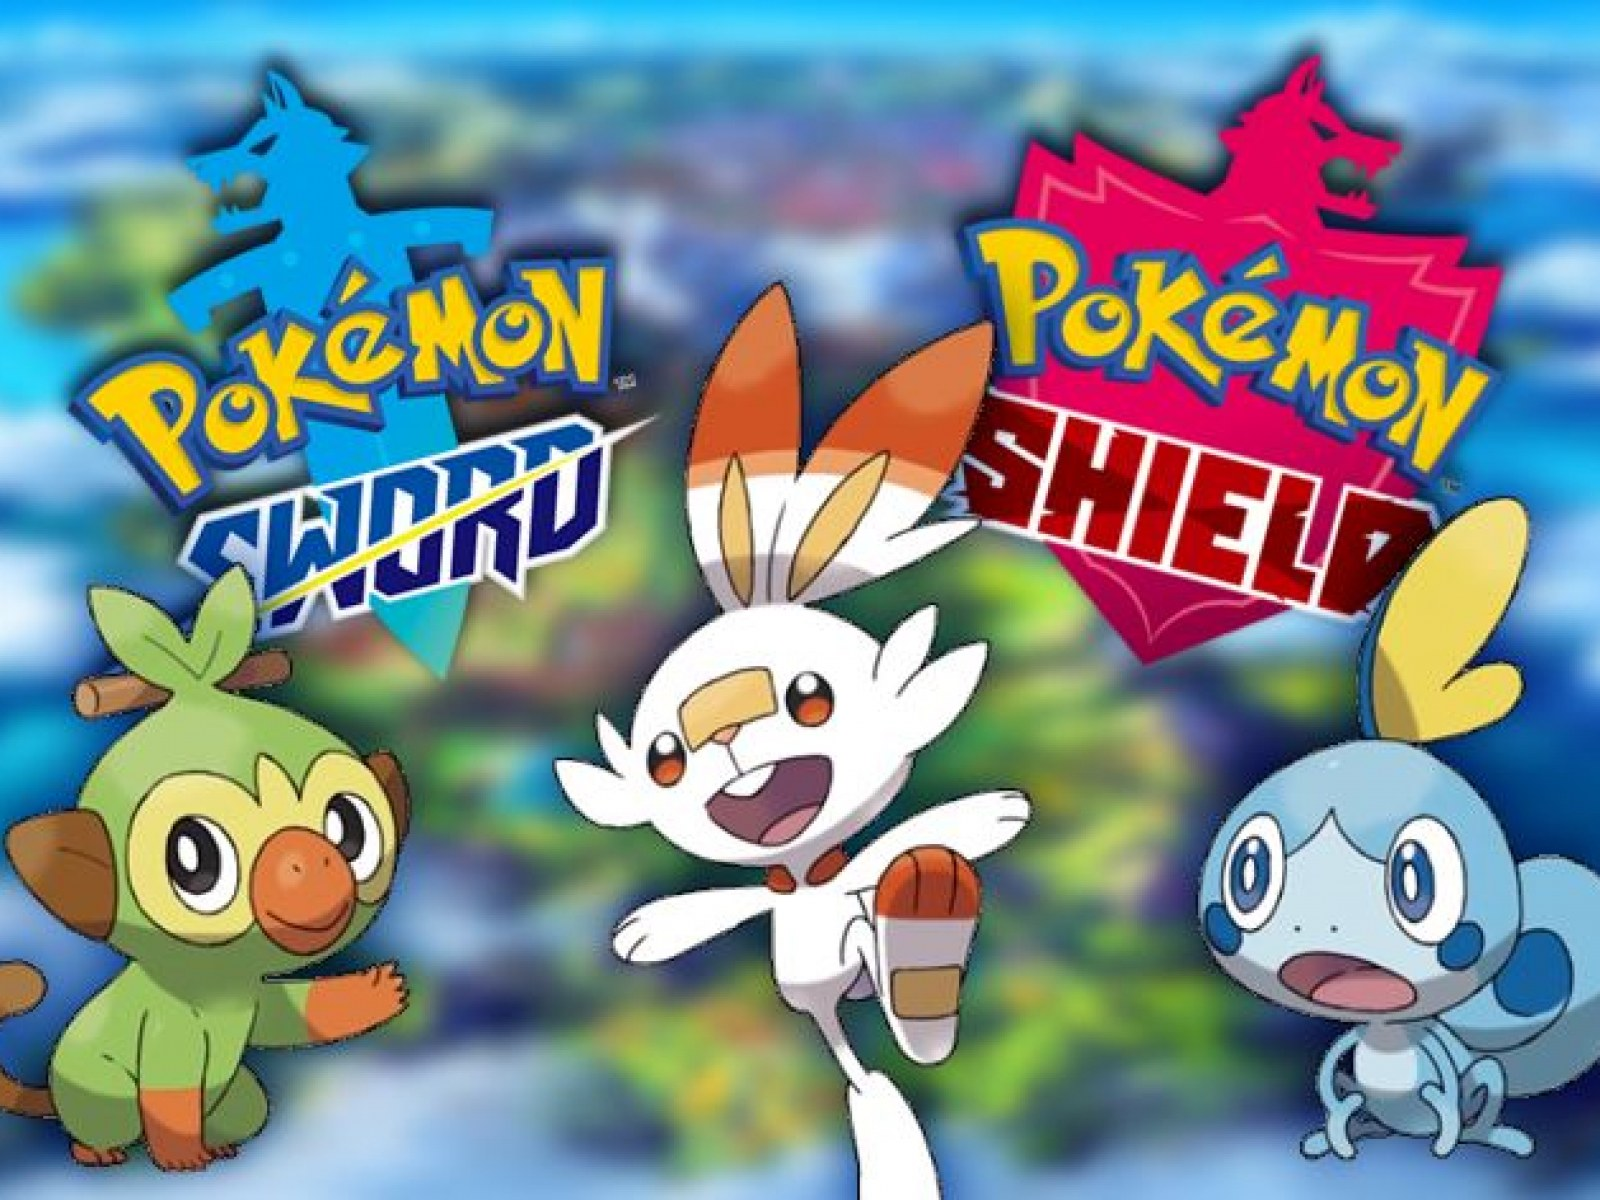 Pokemon Sword And Shield Gen 8 Starter Evolutions Clues And Theories That Fit Sports And Entertainment Themes You can find all information about it in our website. pokemon sword and shield gen 8 starter